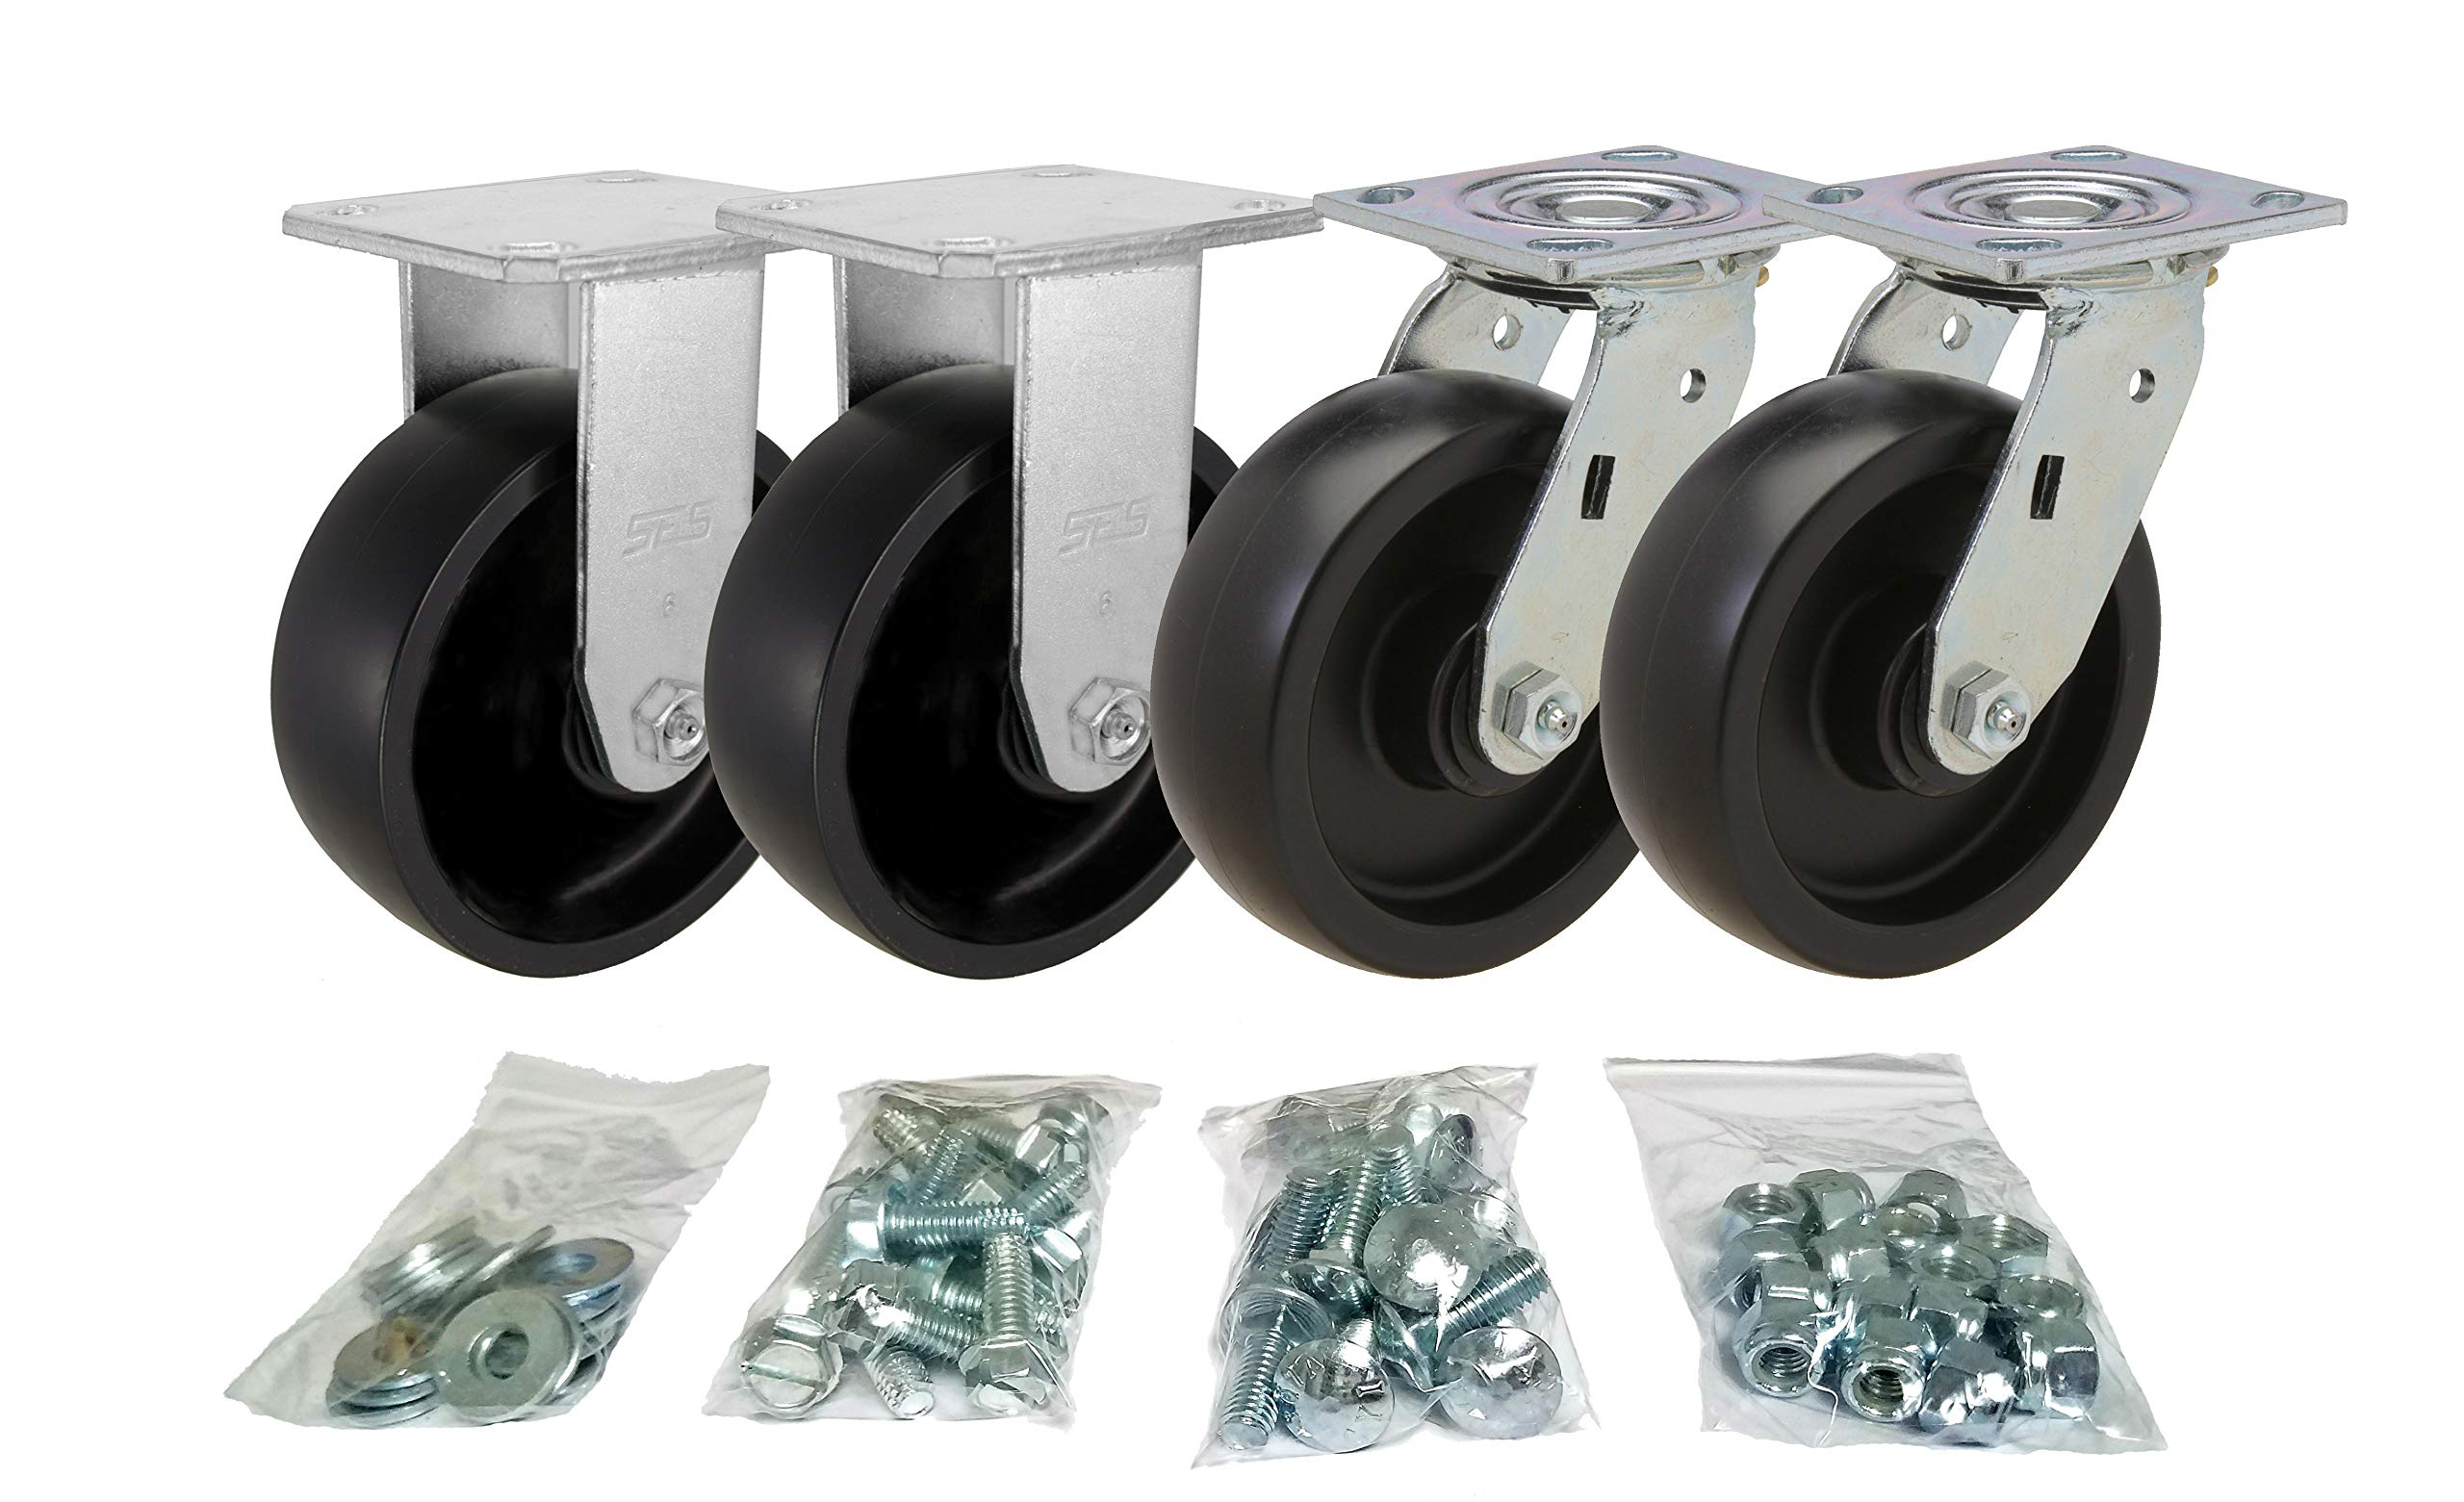 Toolbox Caster Set | 6'' for Greenlee, Knaack and Other Job Boxes | All Mounting Hardware Included